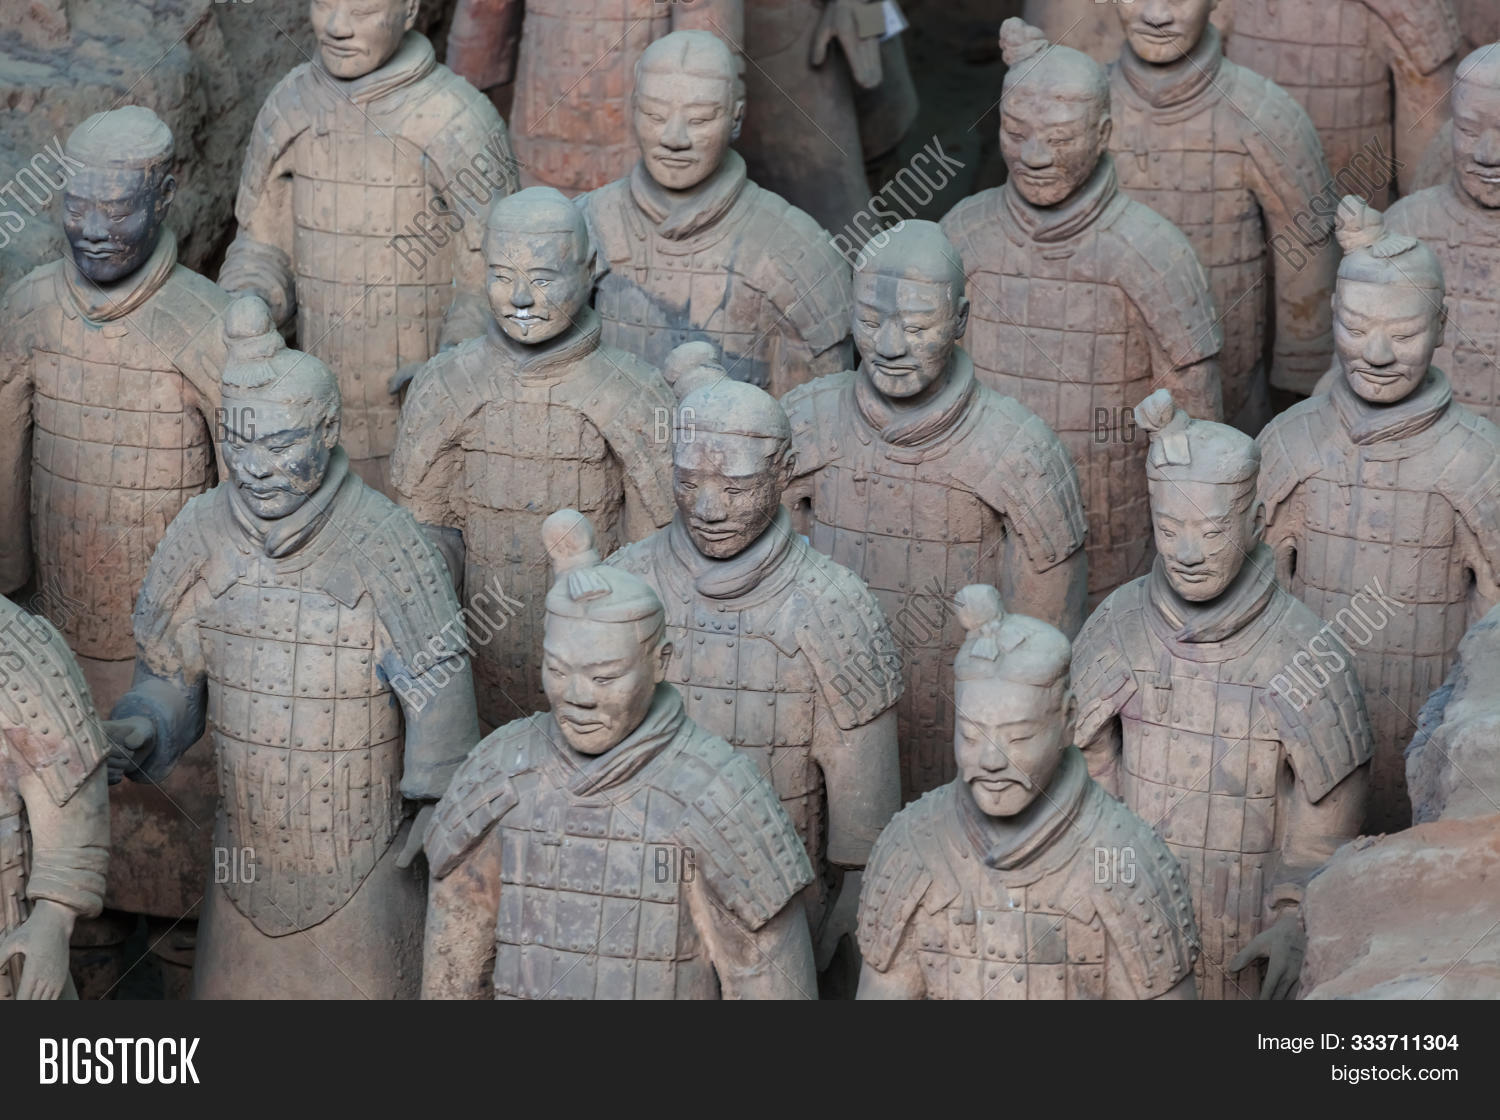 ancient,antique,archeology,army,art,artifacts,asian,attraction,carving,cemetery,china,chinese,clay,culture,destination,east,entrenchment,face,famous,fighter,figure,grave,group,guard,heritage,historic,history,horse,landmark,mausoleum,military,monument,museum,mystery,old,oriental,people,pottery,row,sculpture,sightseeing,soldiers,statue,terracotta,tomb,trench,vintage,war,warriors,xian